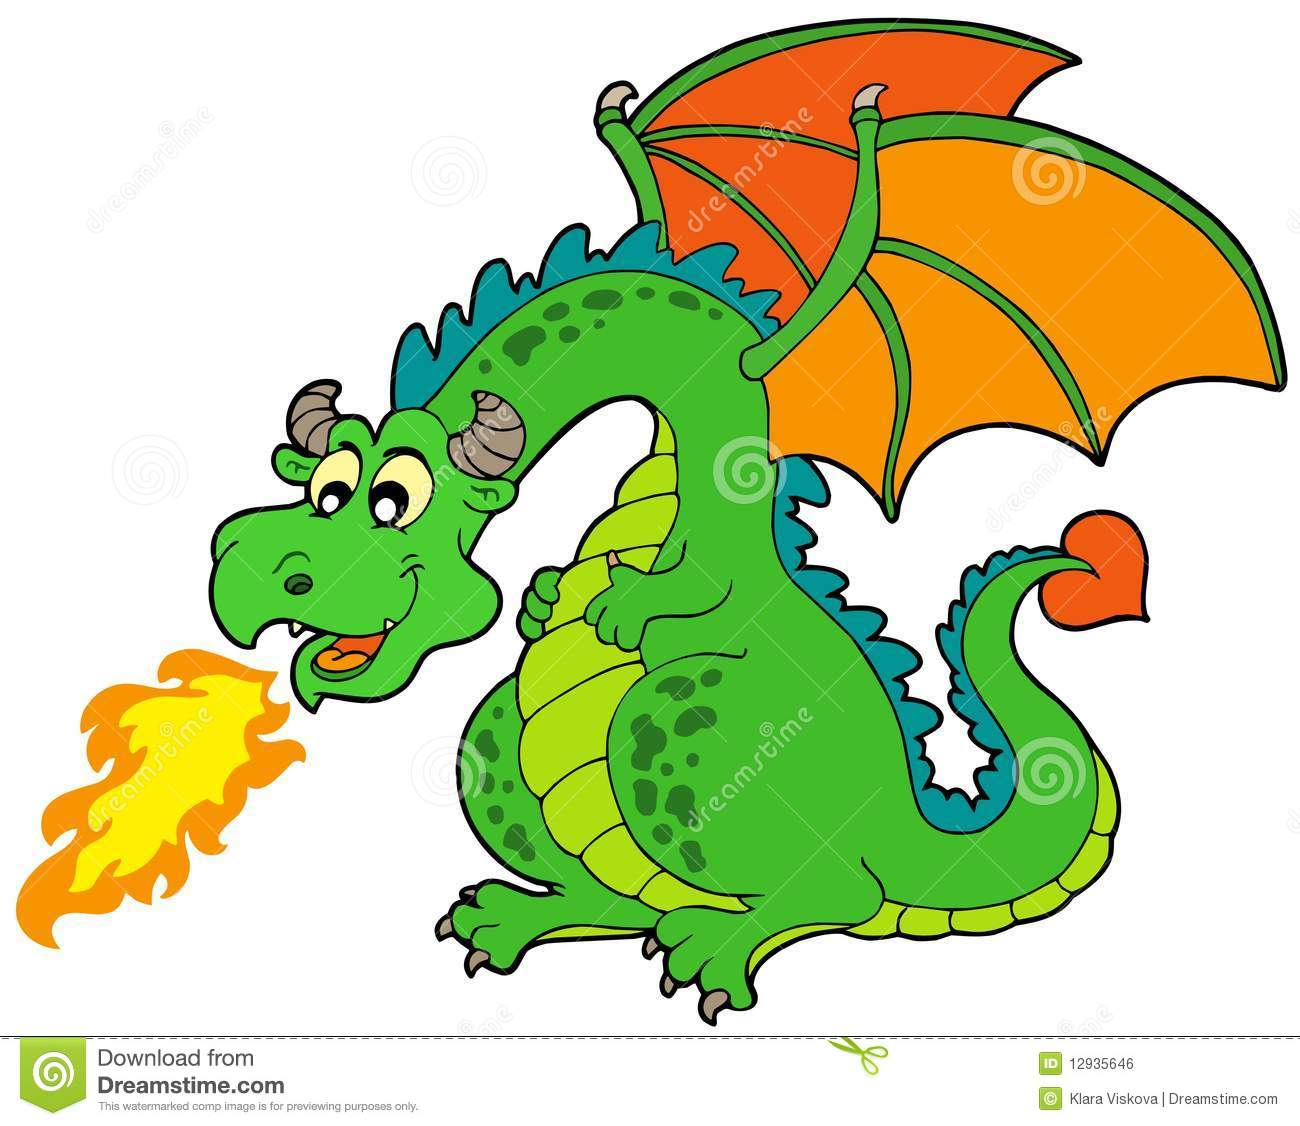 Dragon d 39 incendie de dessin anim illustration de vecteur - Modele dessin dragon ...